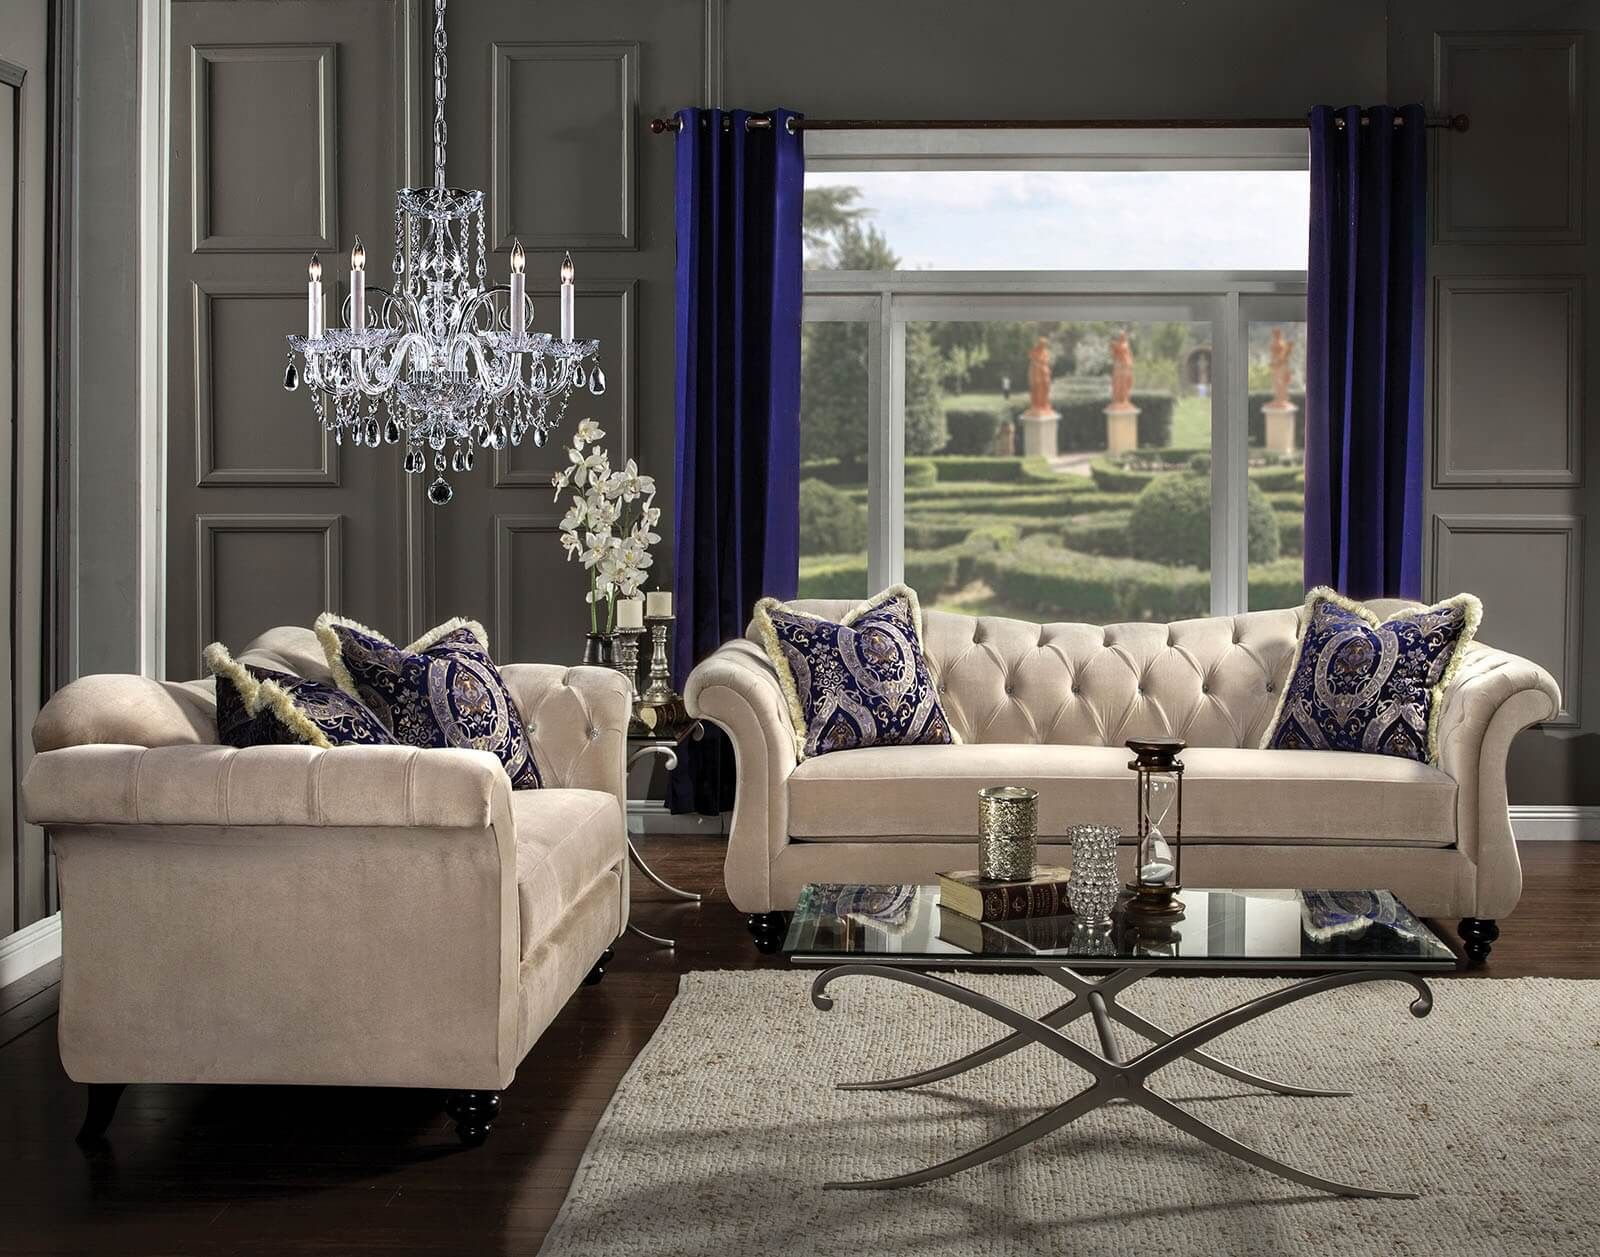 Awesome Tufted Sofa Set , Fancy Tufted Sofa Set 13 For Sofas And Couches  Ideas With Tufted Sofa Set , Http://sofascouch.com/tufted Sofa Set/14944